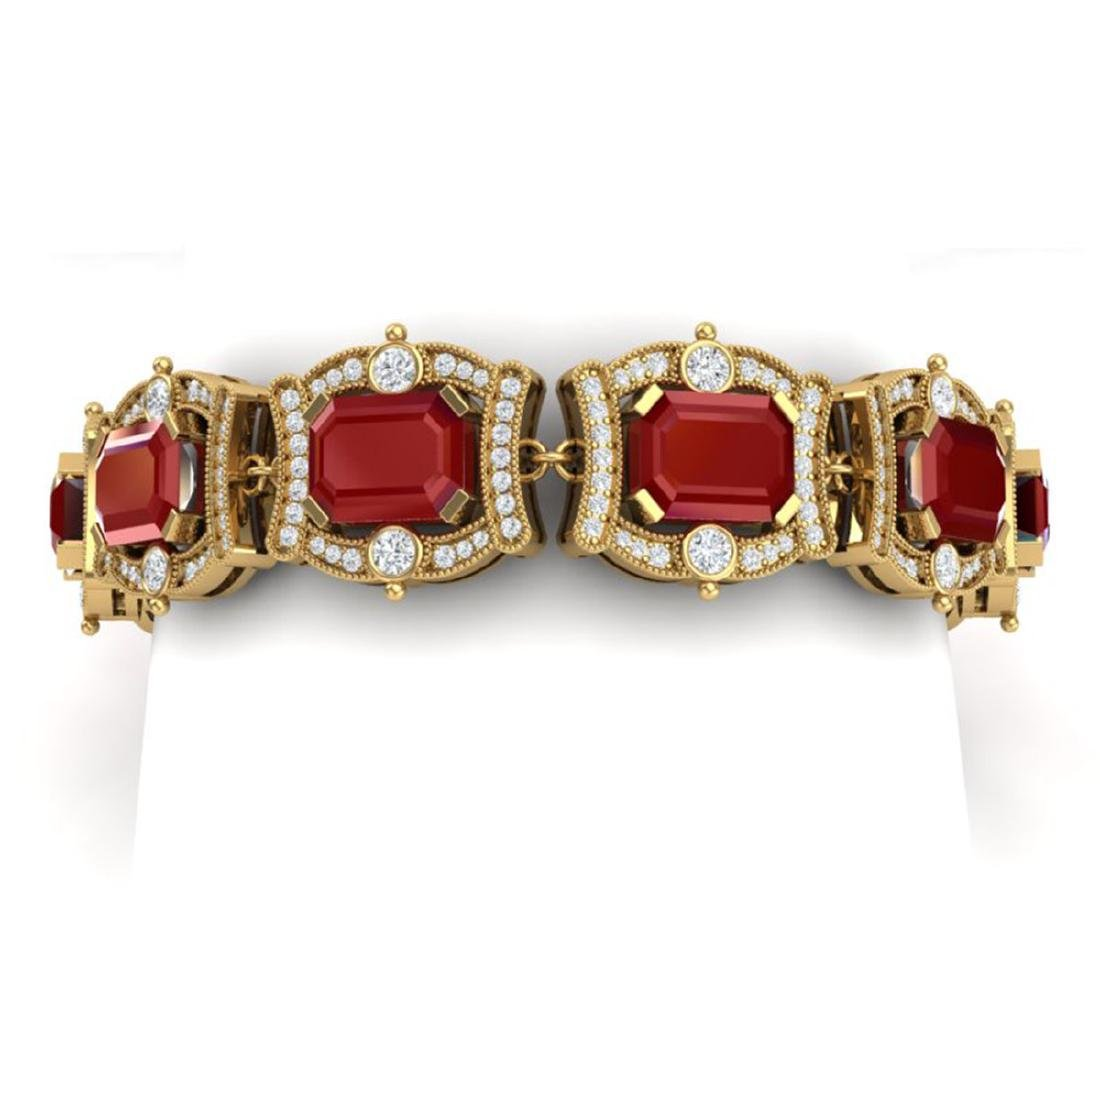 43.87 CTW Royalty Ruby & VS Diamond Bracelet 18K Yellow